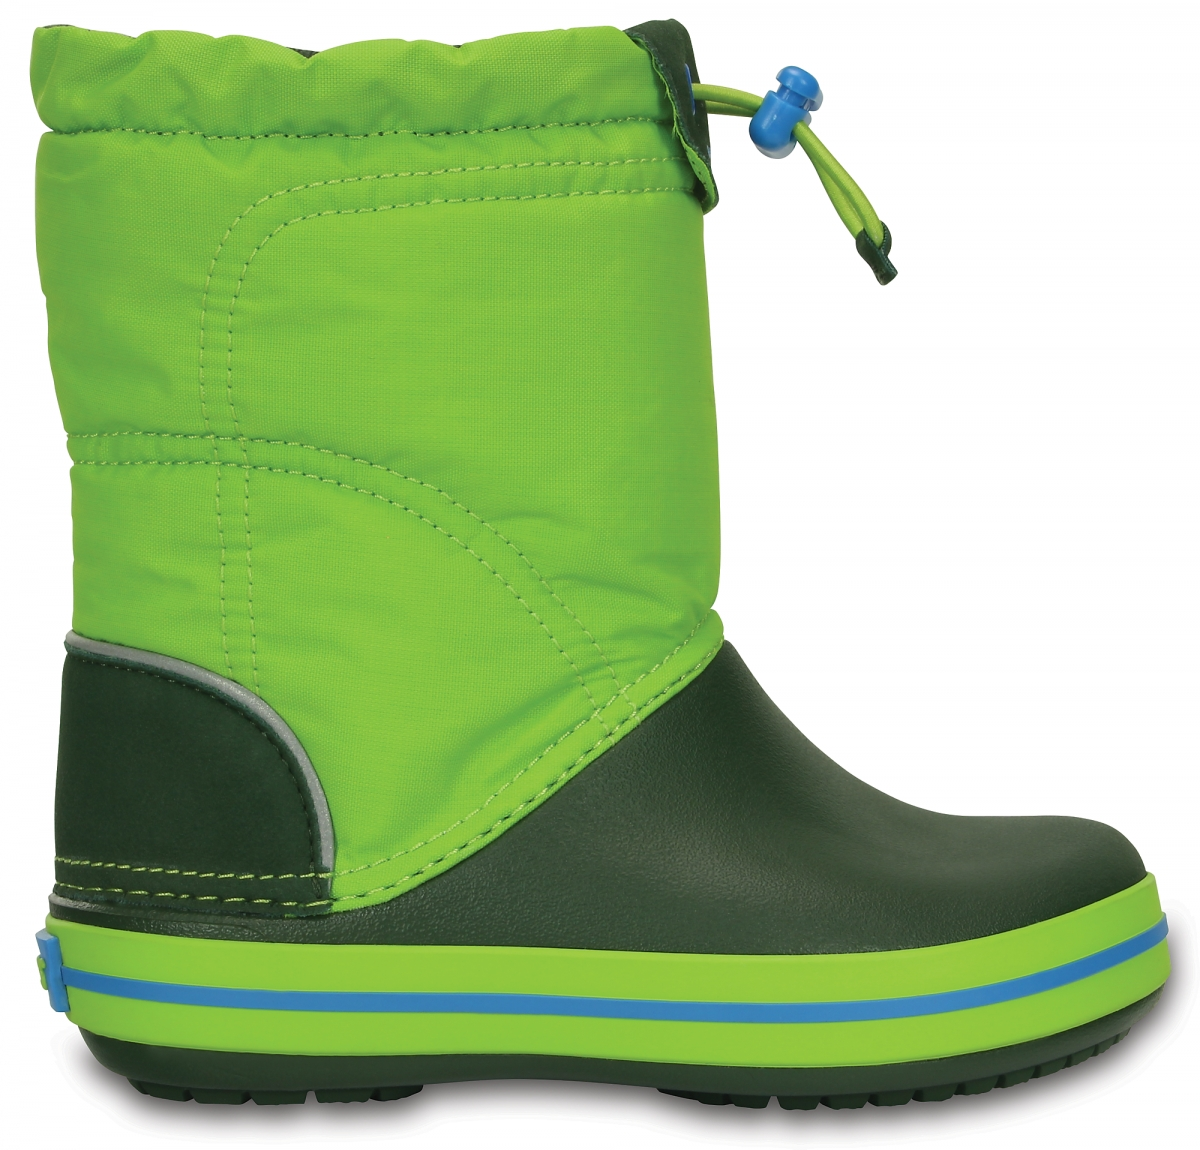 Crocs Crocband LodgePoint Boot Kids - Lime/Forest Green, J3 (34-35)